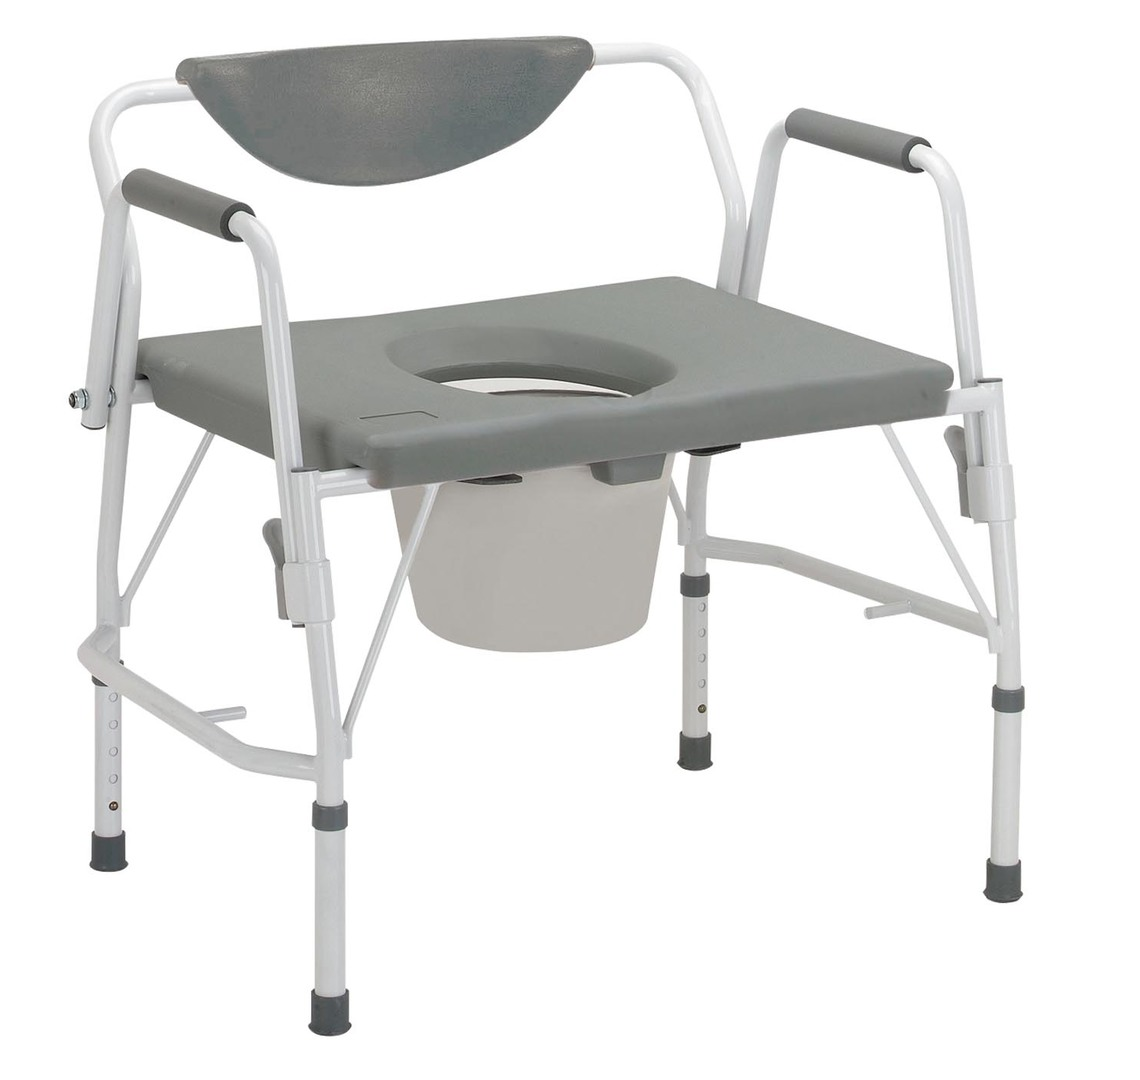 heavy duty commode chair best for spinal fusion feel dry all in ones world of scooters manchester